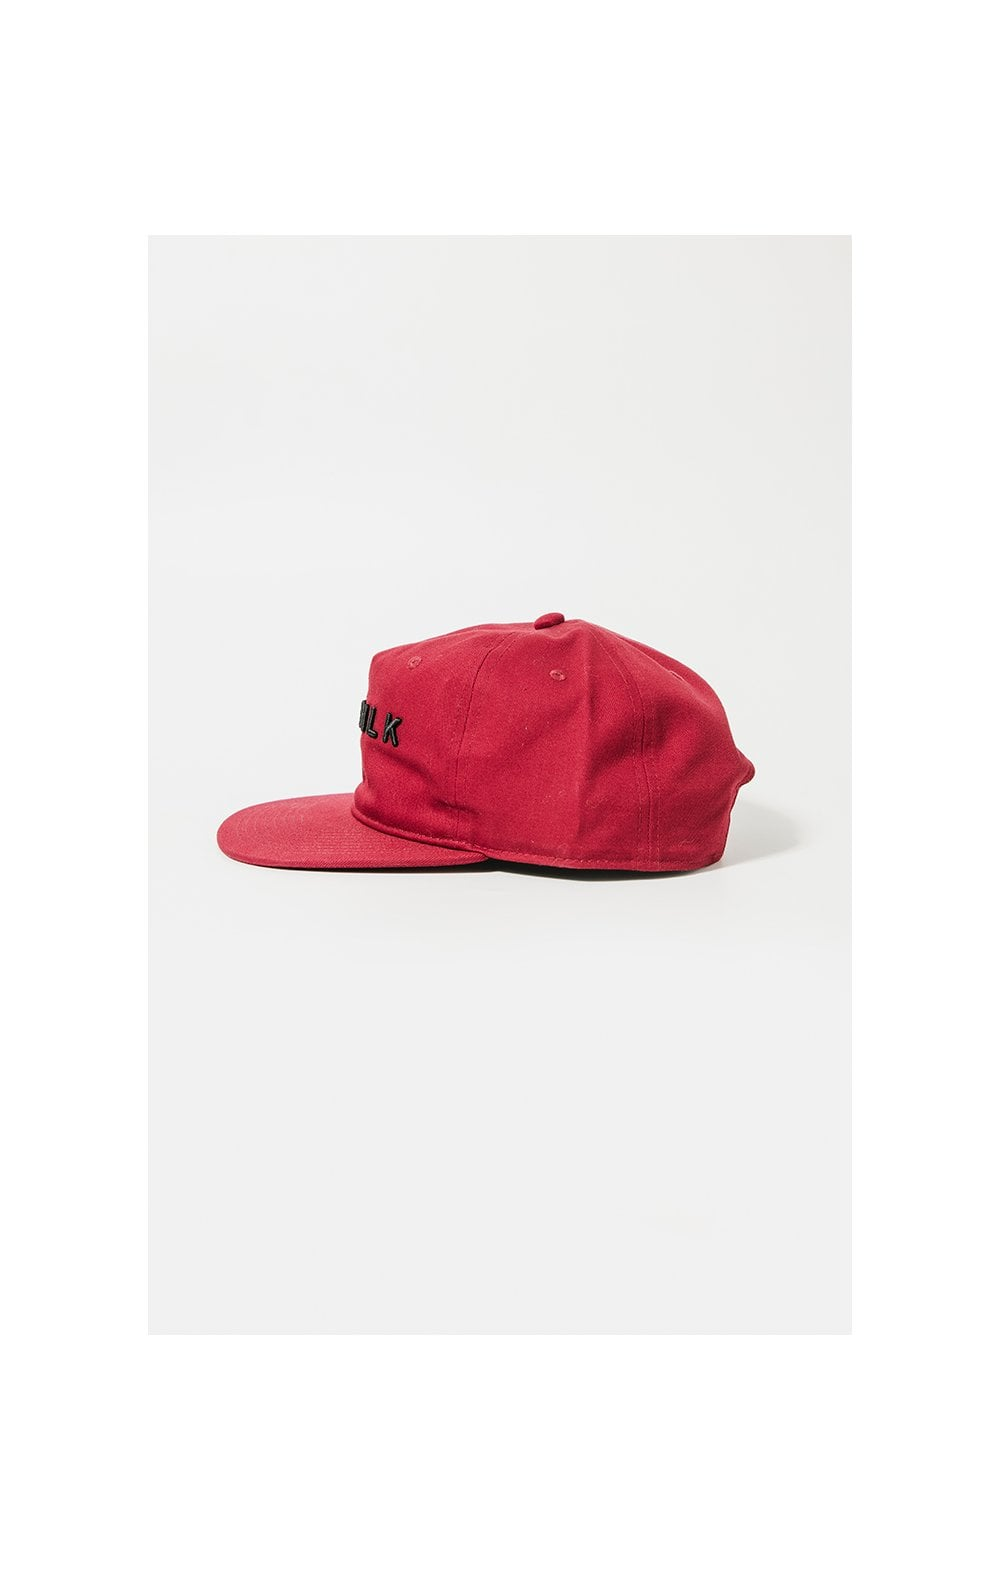 SikSilk Cotton Snap Back - Red (2)